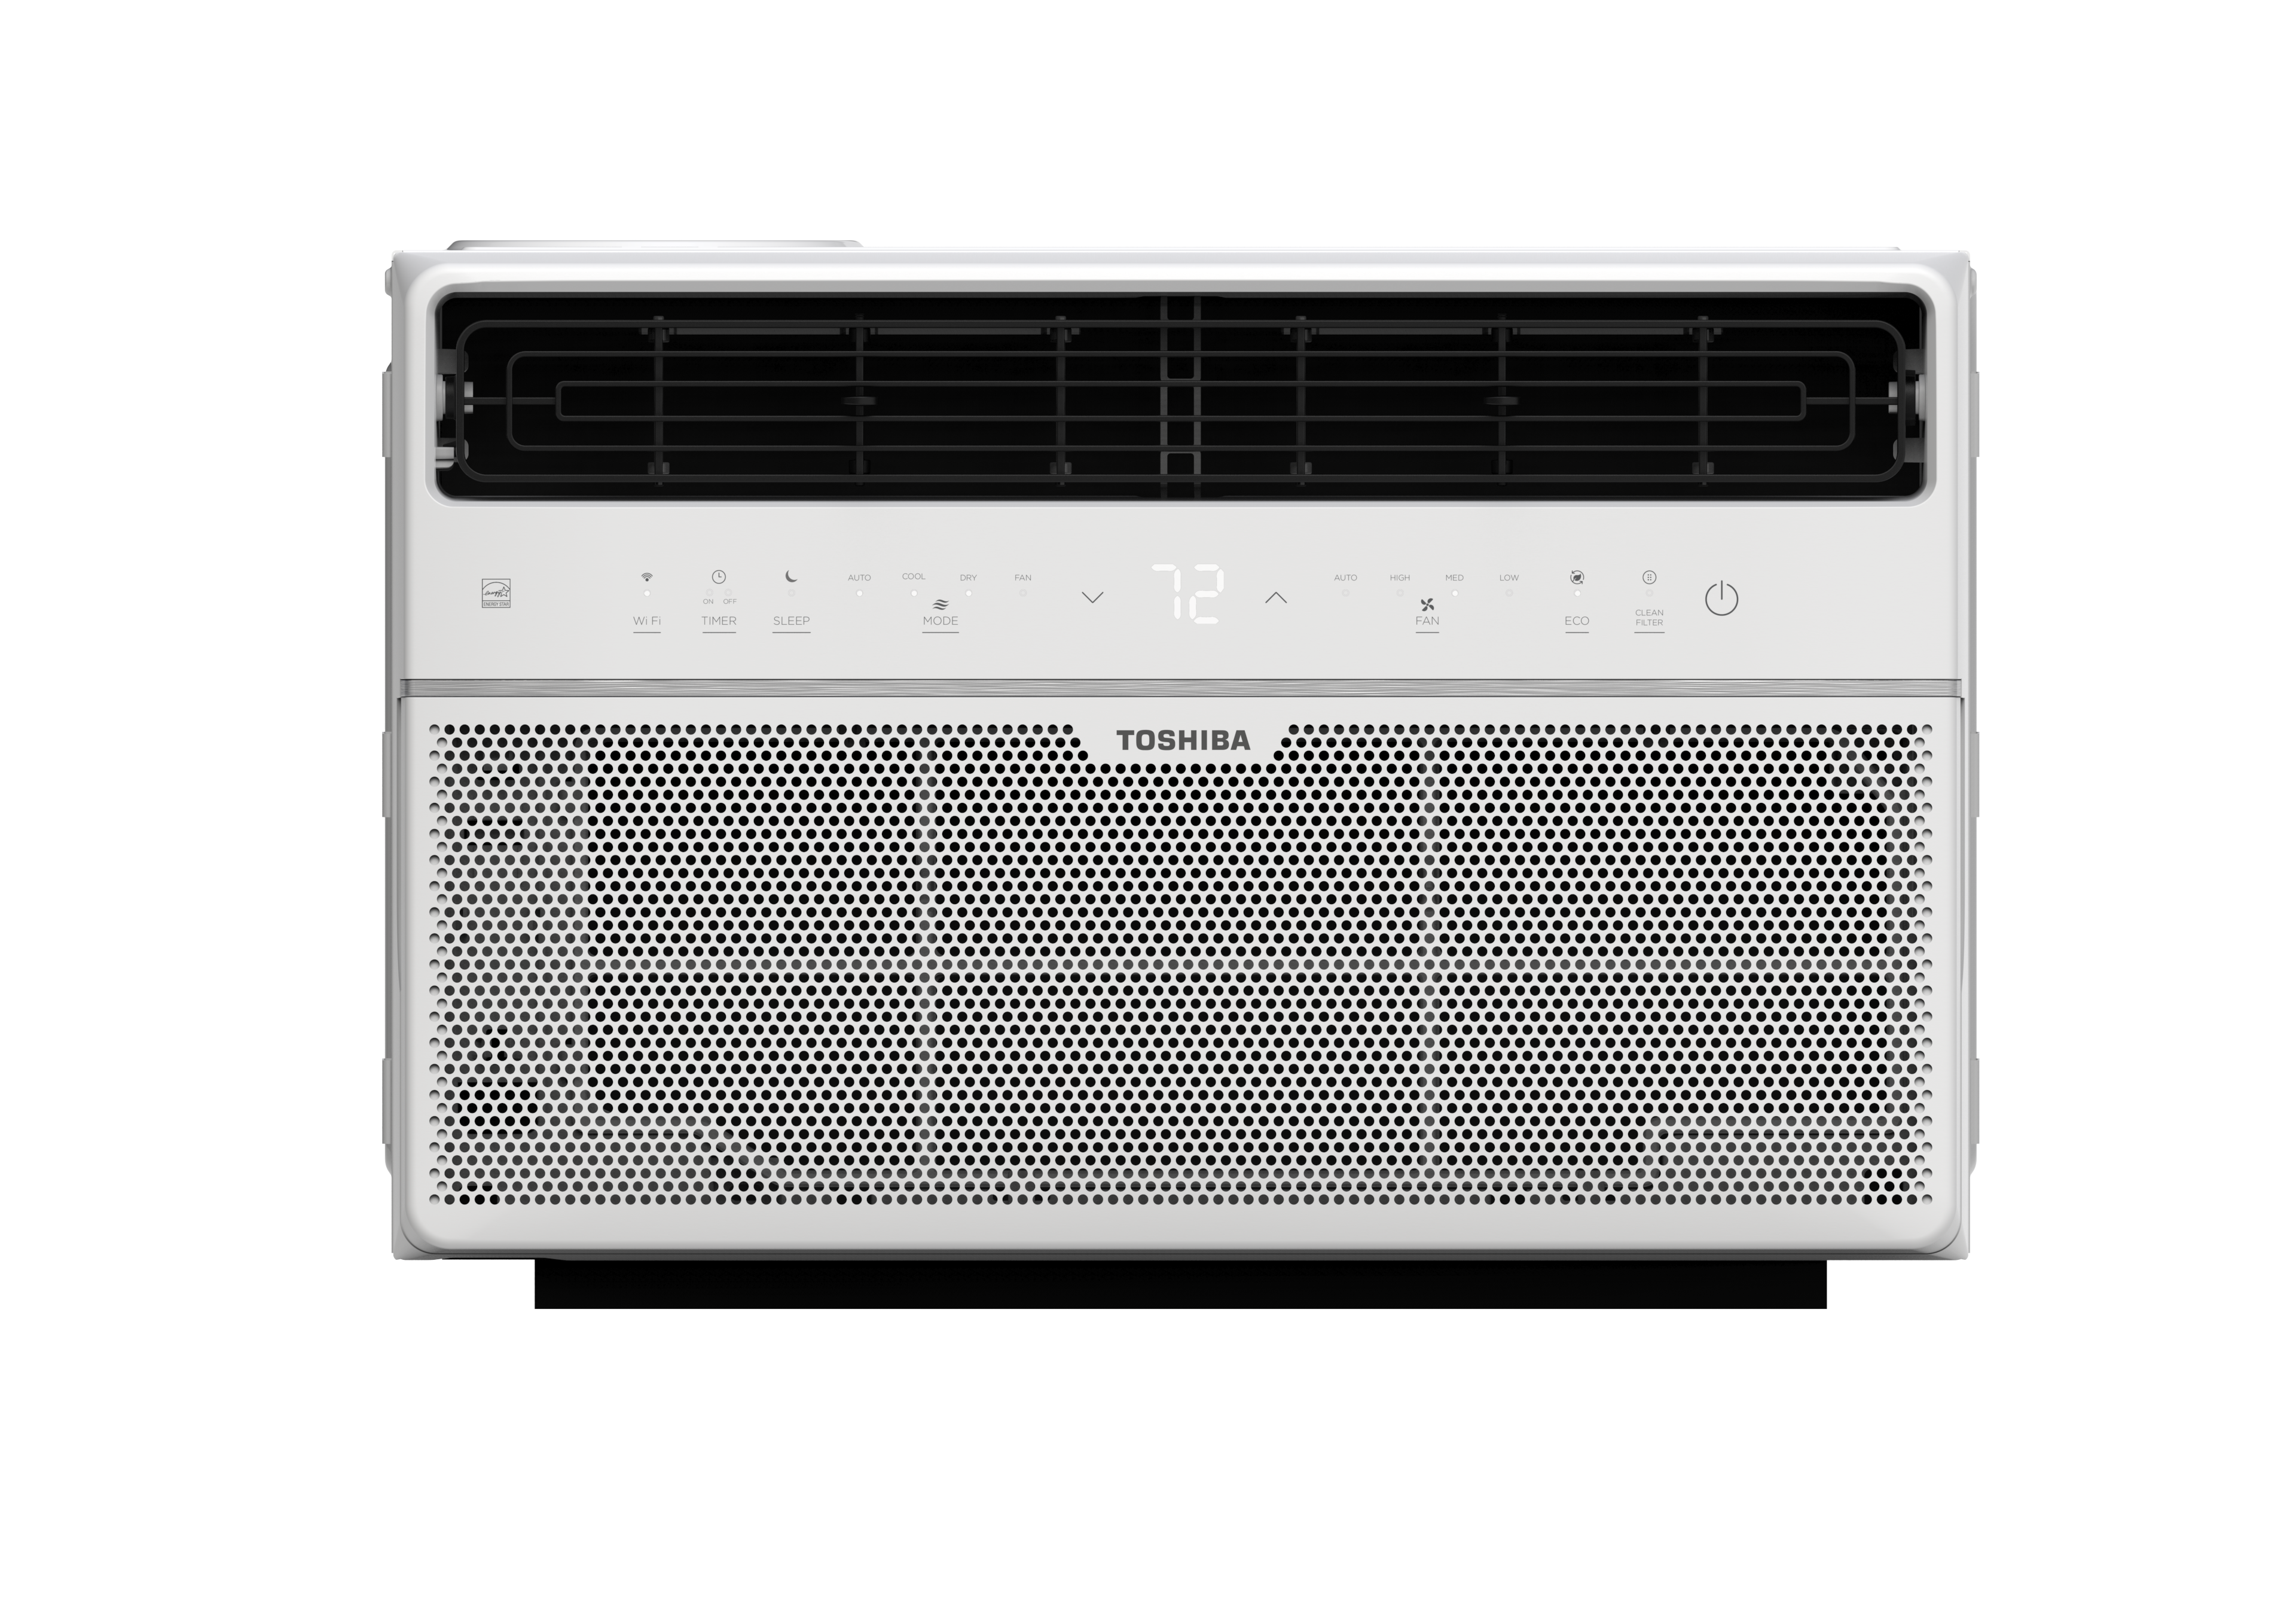 The Toshiba Smart 8,000 BTU window air conditioner has the power to cool up to 350 square feet with a sleek design, a unique touch control interface and a compact remote control. Smart functionalities include a smartphone app to control your AC through Wi-Fi from anywhere, at home or through the cloud, or even using the Amazon Alexa voice assistant with the Toshiba AC Skill. The unit fits most windows with the easy to use installation panel kit for quick setup and offers 4 speeds for cooling, ventilation or dehumidification, including a fully automatic mode and 4-way air direction control. To save energy, the air conditioner is ENERGY STAR certified® and offers an ECO mode, while other intelligent features such as the 24-hour Timer, Sleep mode and the Filter Clean warning help you to personalize your comfort. Cool, dehumidify or ventilate the space you need and get peace of mind with a 1 year warranty by Toshiba.